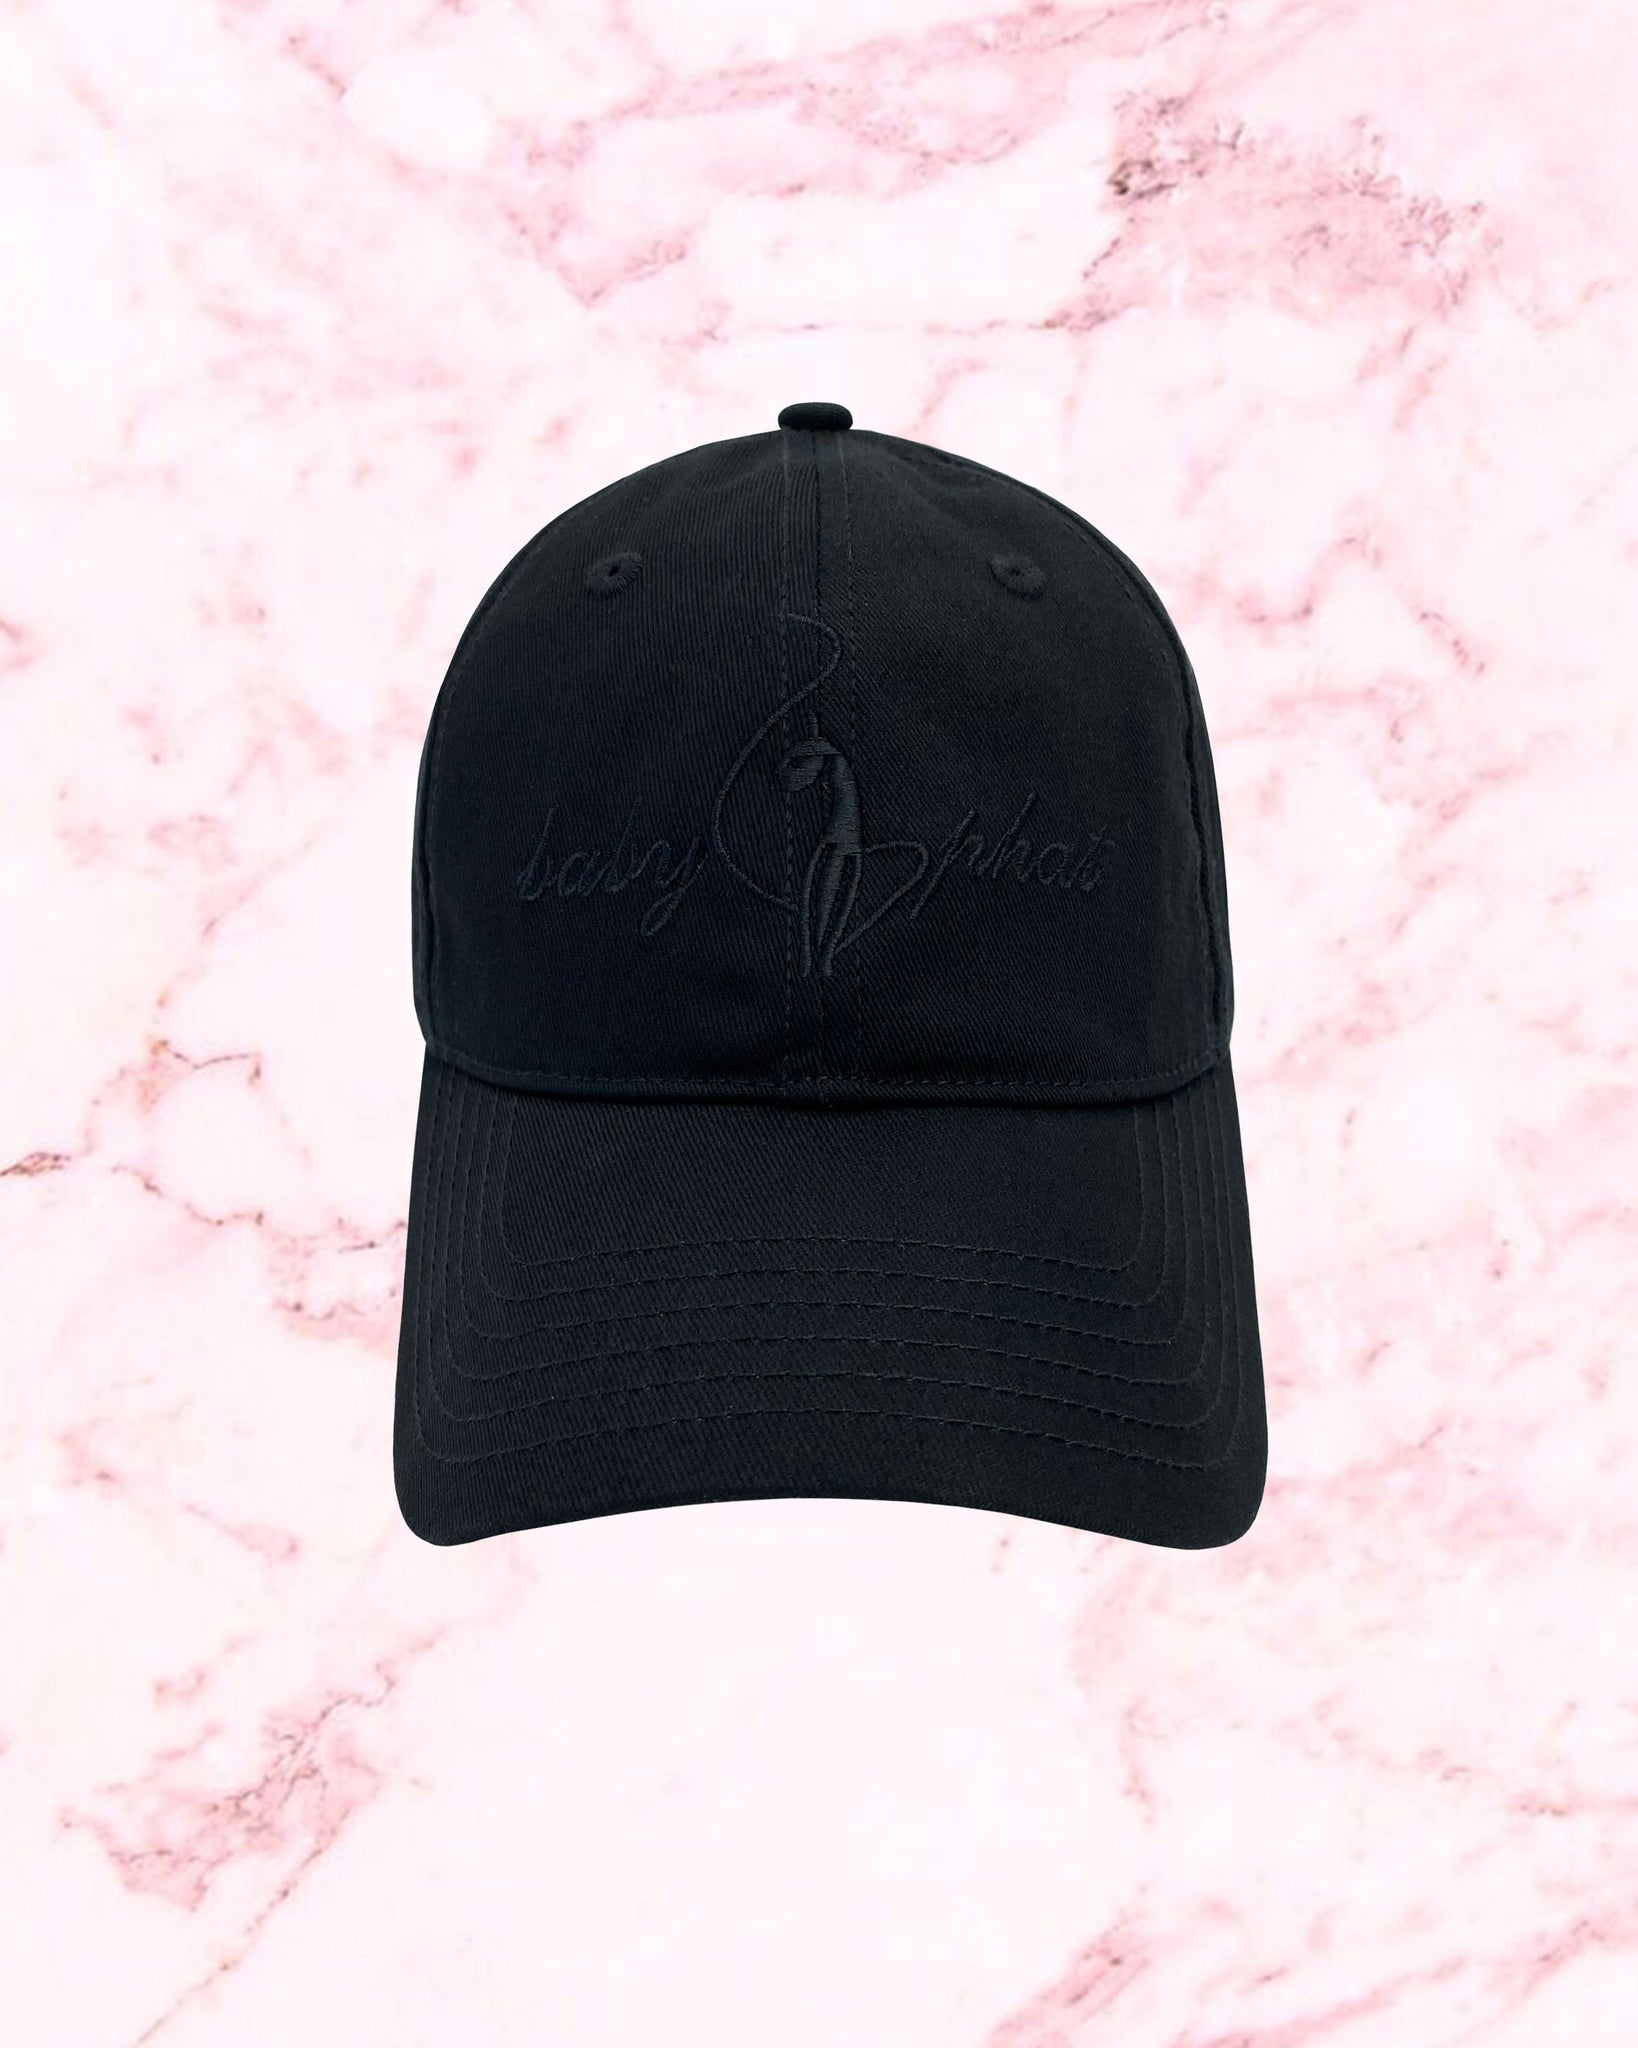 Black baseball hat features Baby Phat logo embroidered at front.